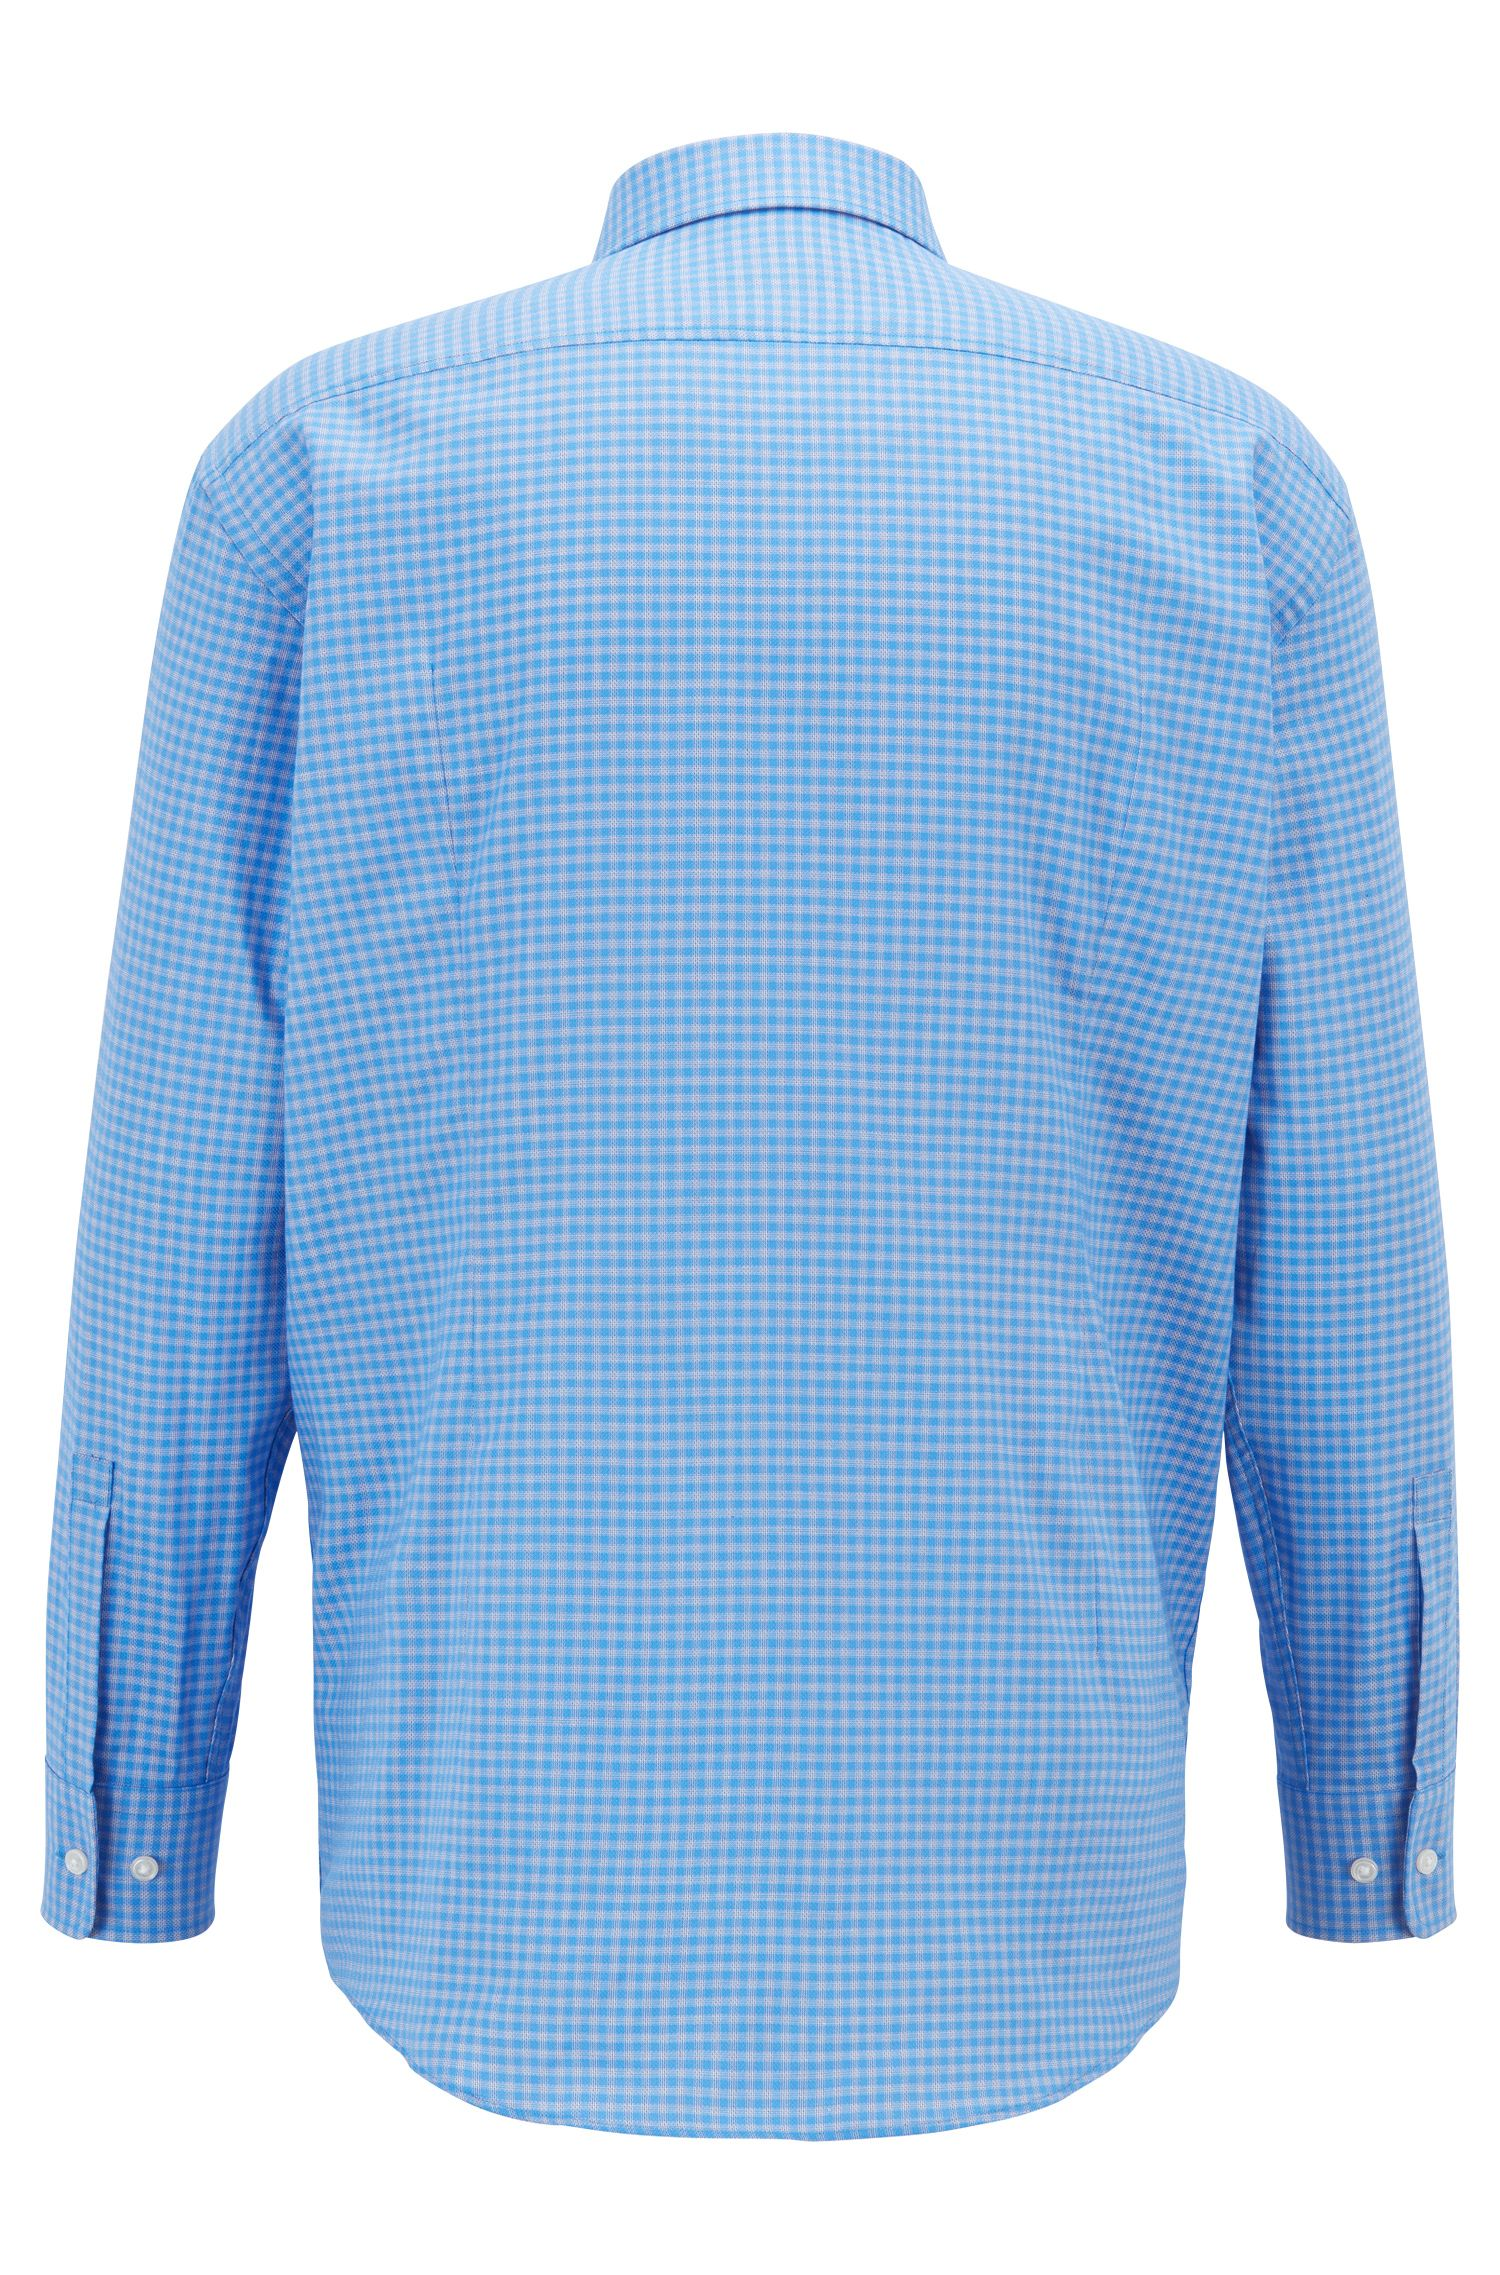 Sharp-fit shirt in cotton twill with Vichy check pattern, Blue